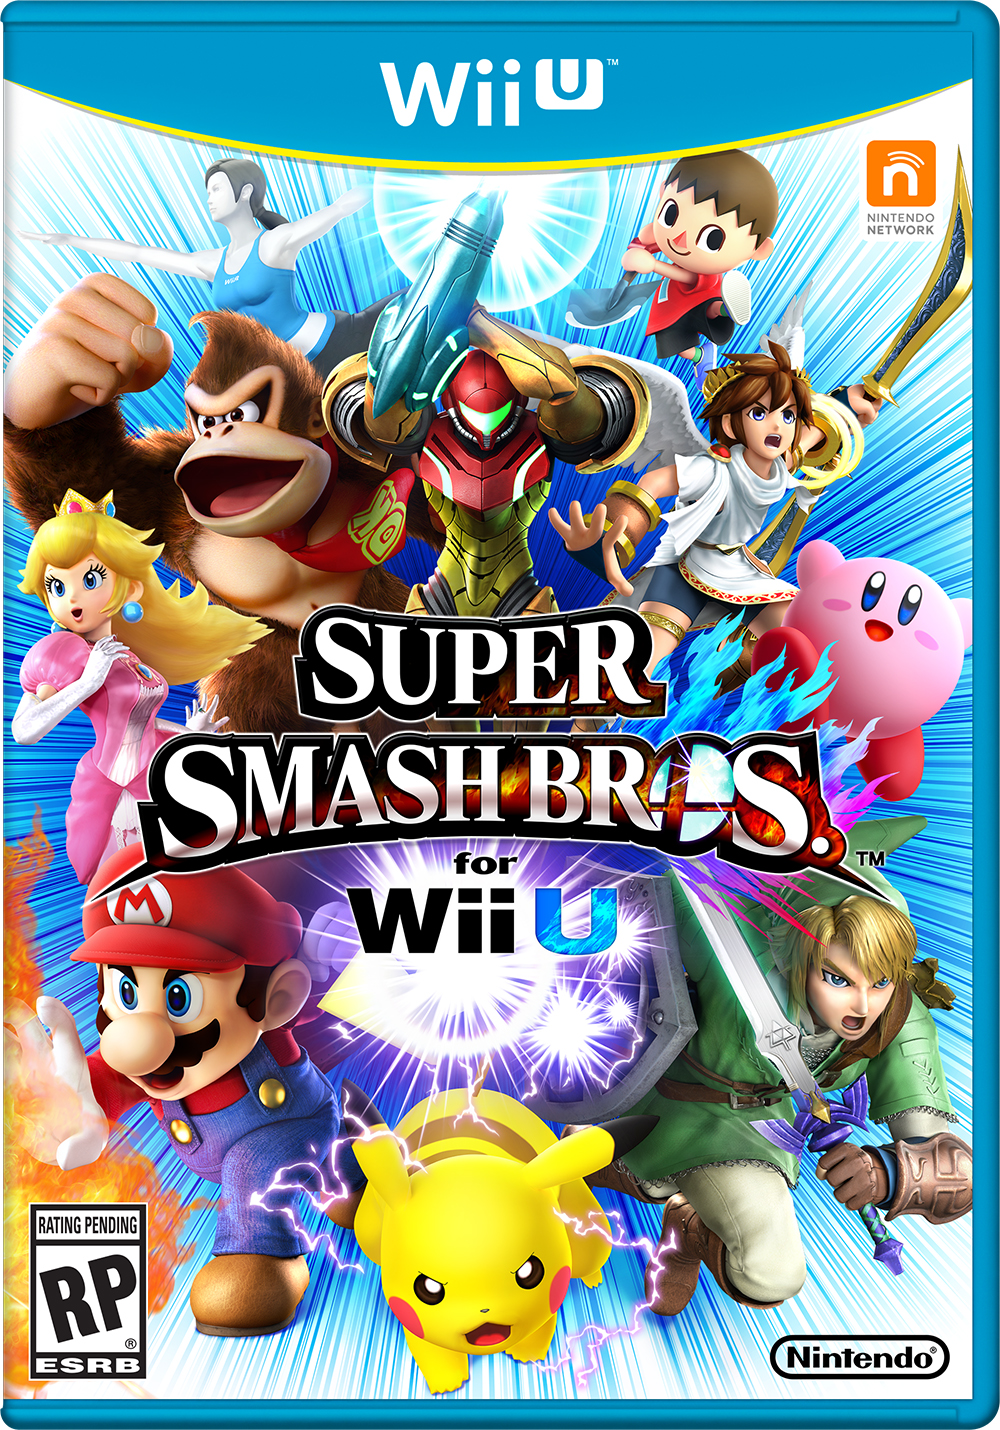 DEALZONE: Super Smash Bros Wii U and Amiibo arrive November 21 in US, December 5 in UK